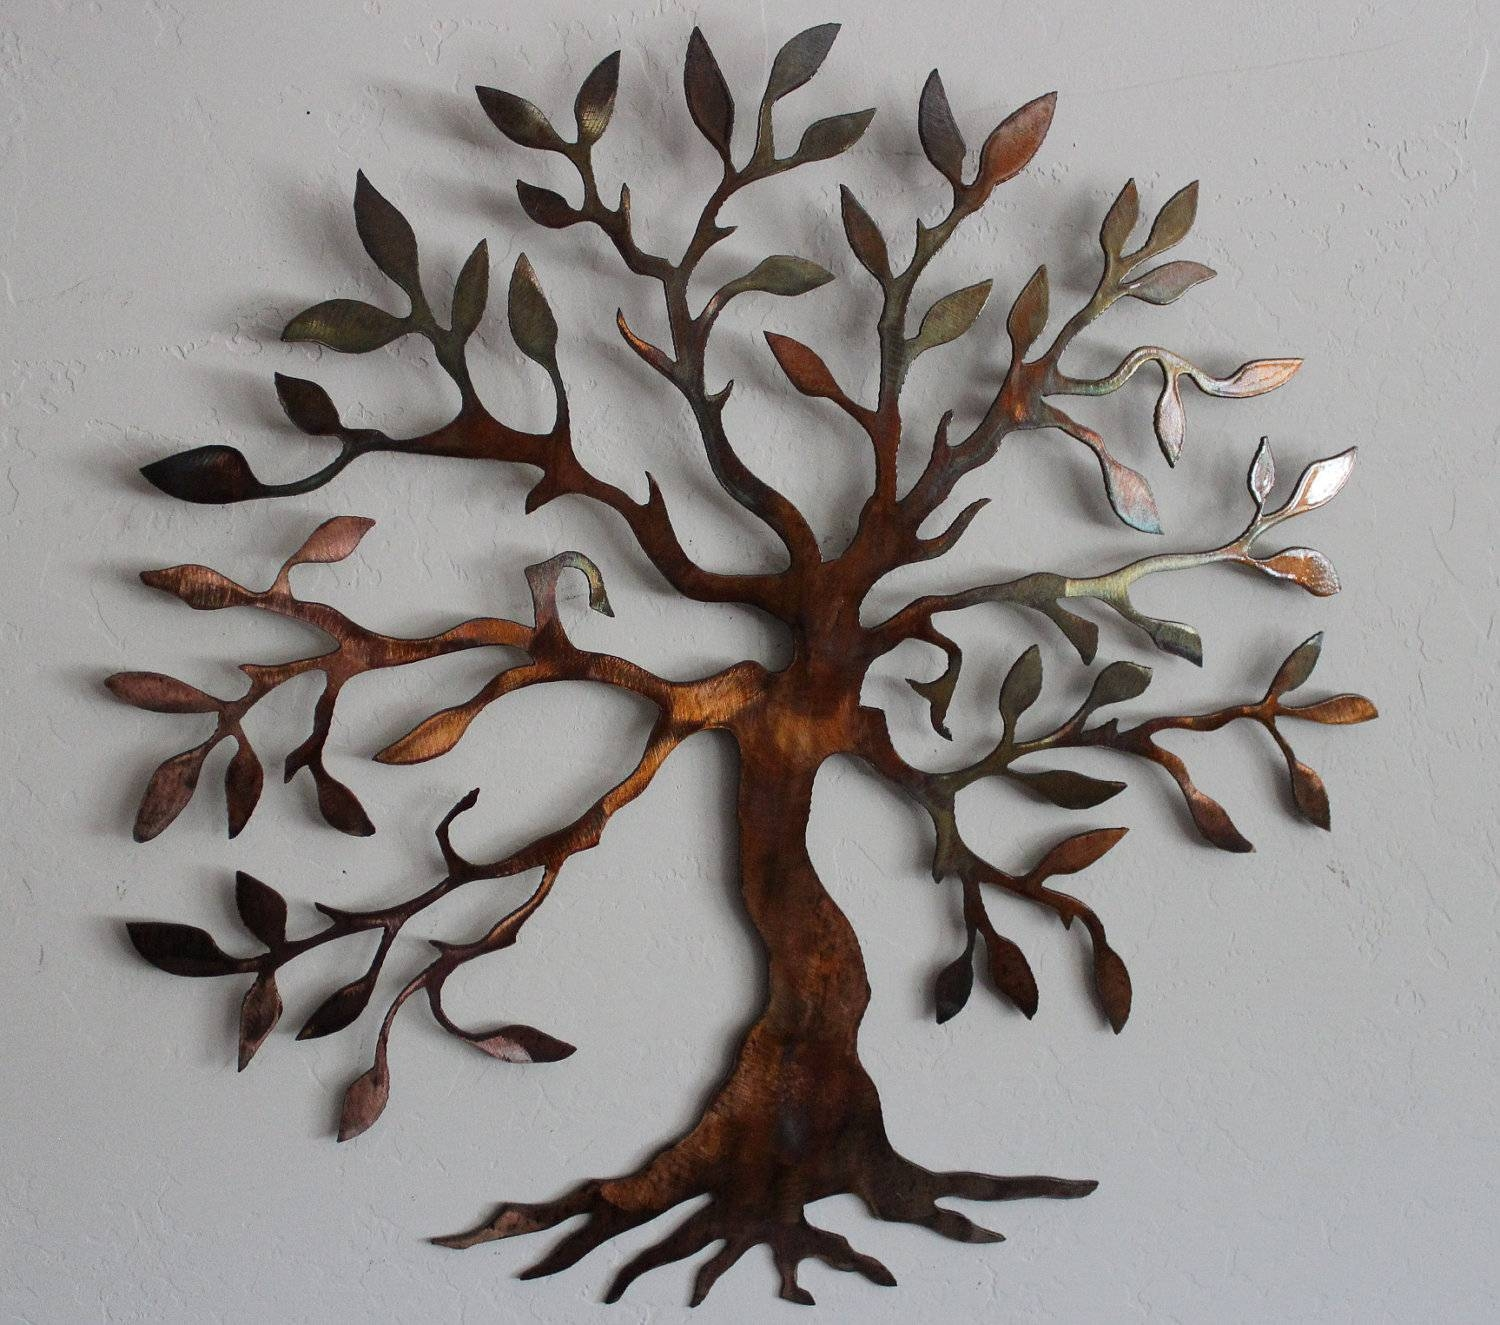 Charming Tree Metal Wall Art Decor Sculpture Design~ Popular Home Inside Best And Newest Metal Wall Art Tree (View 14 of 20)